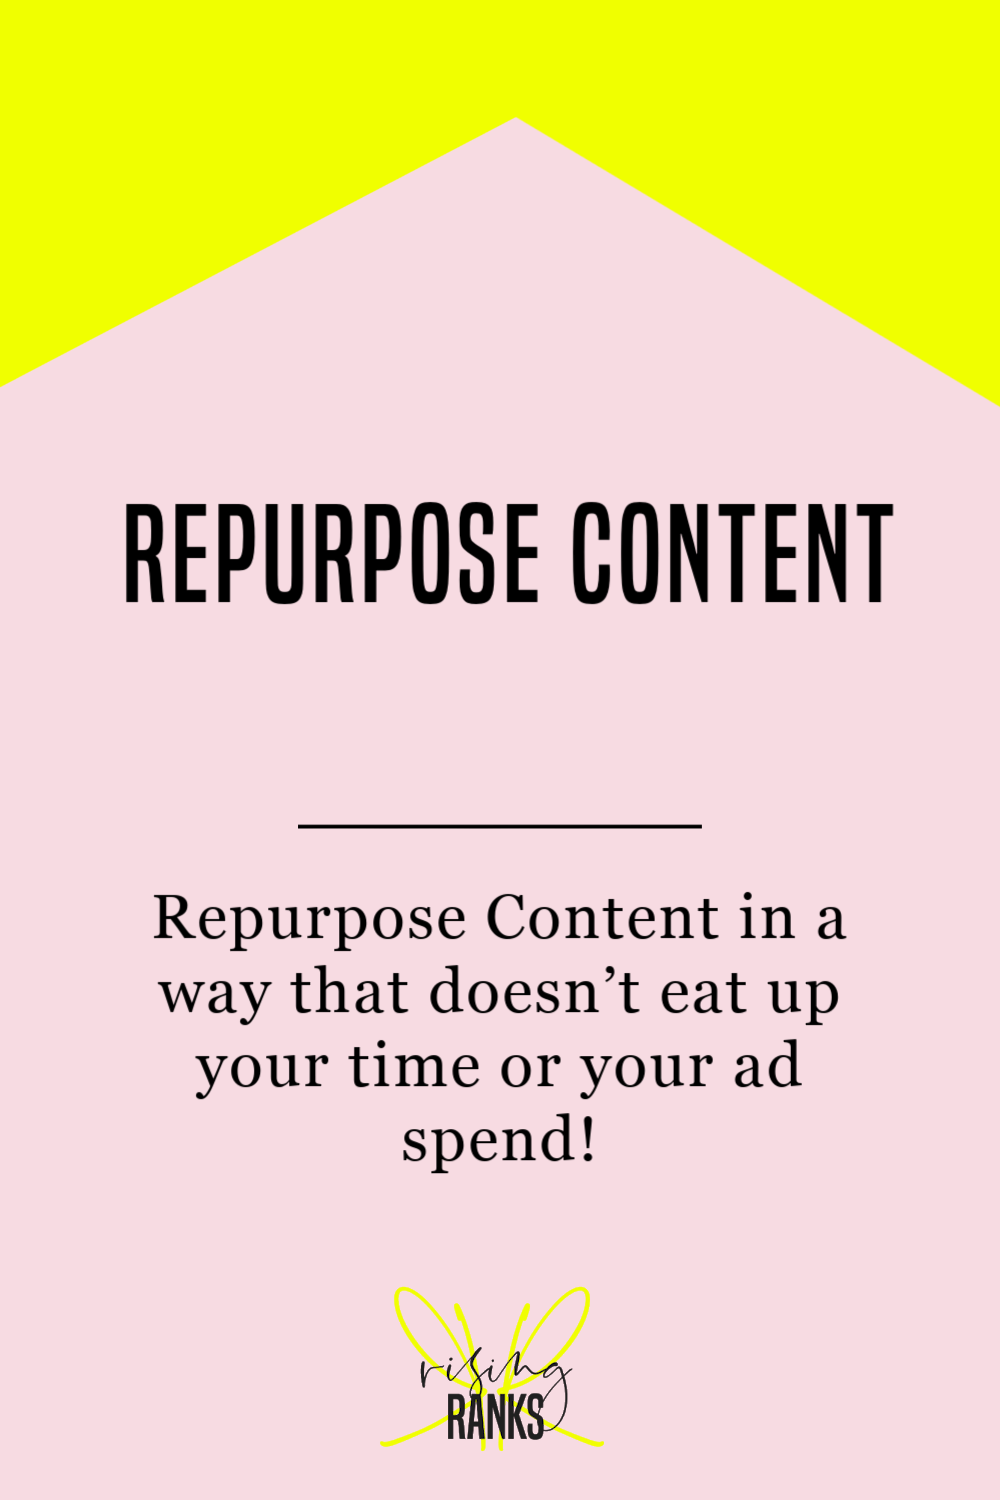 copy how to repurpose content easily